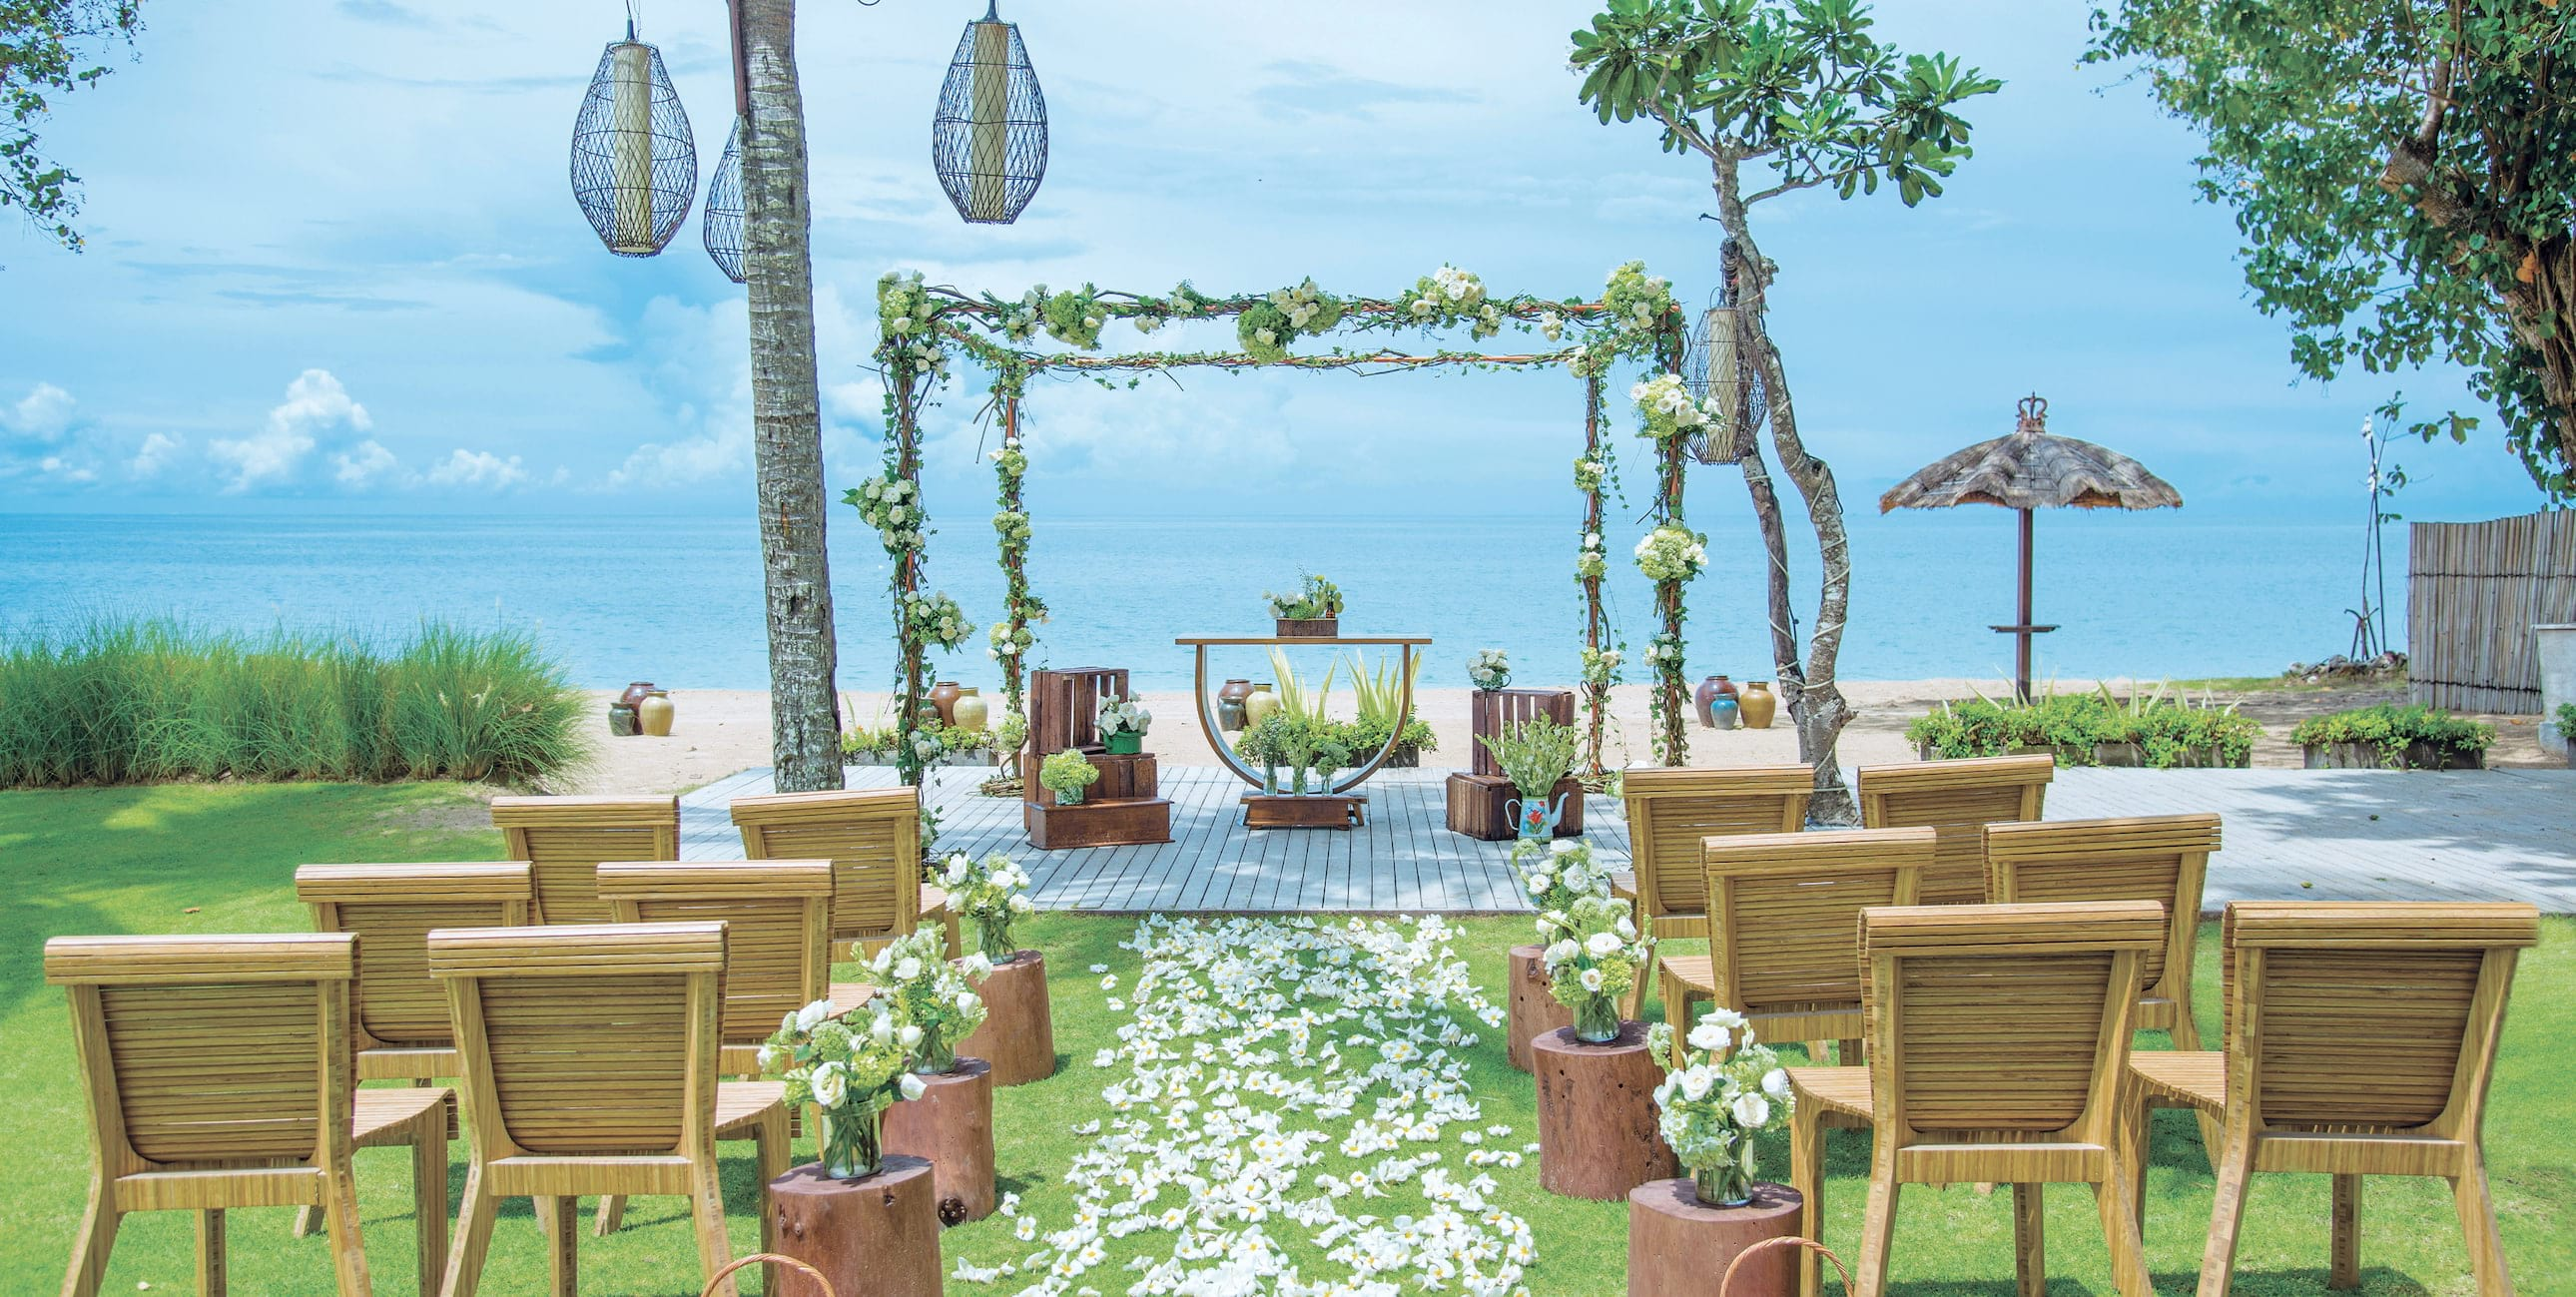 Destination Wedding Experiences Your Guests Will Love